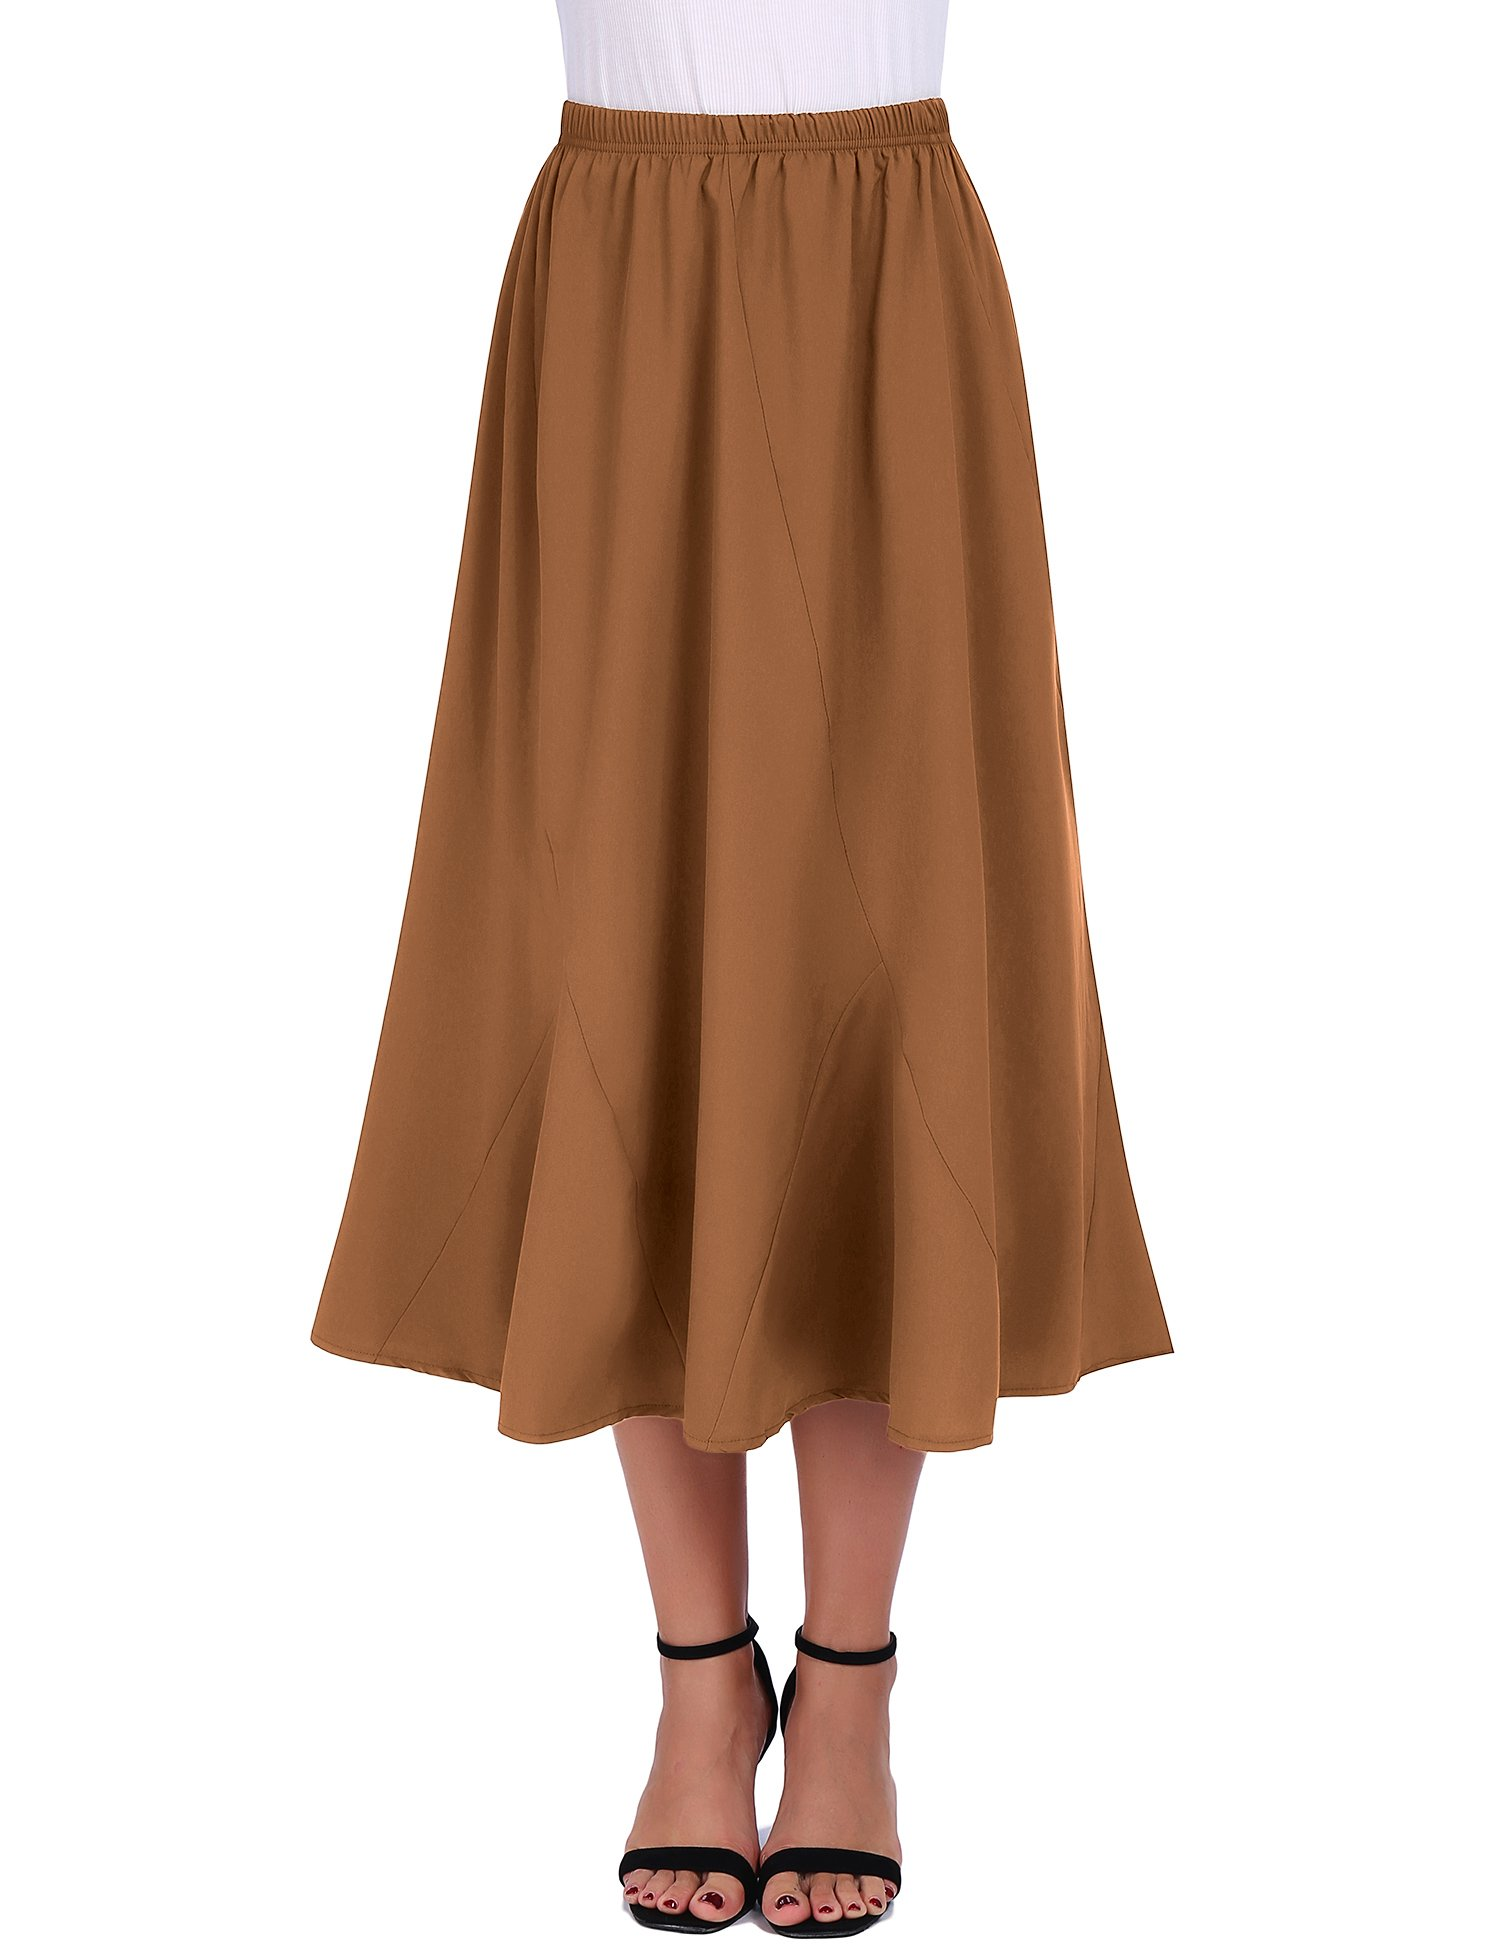 FISOUL Women Vintage Elastic Waist Skirts Casual Ankle Length Flared A-Line Pleated Long Skirts (Coffee, Small)